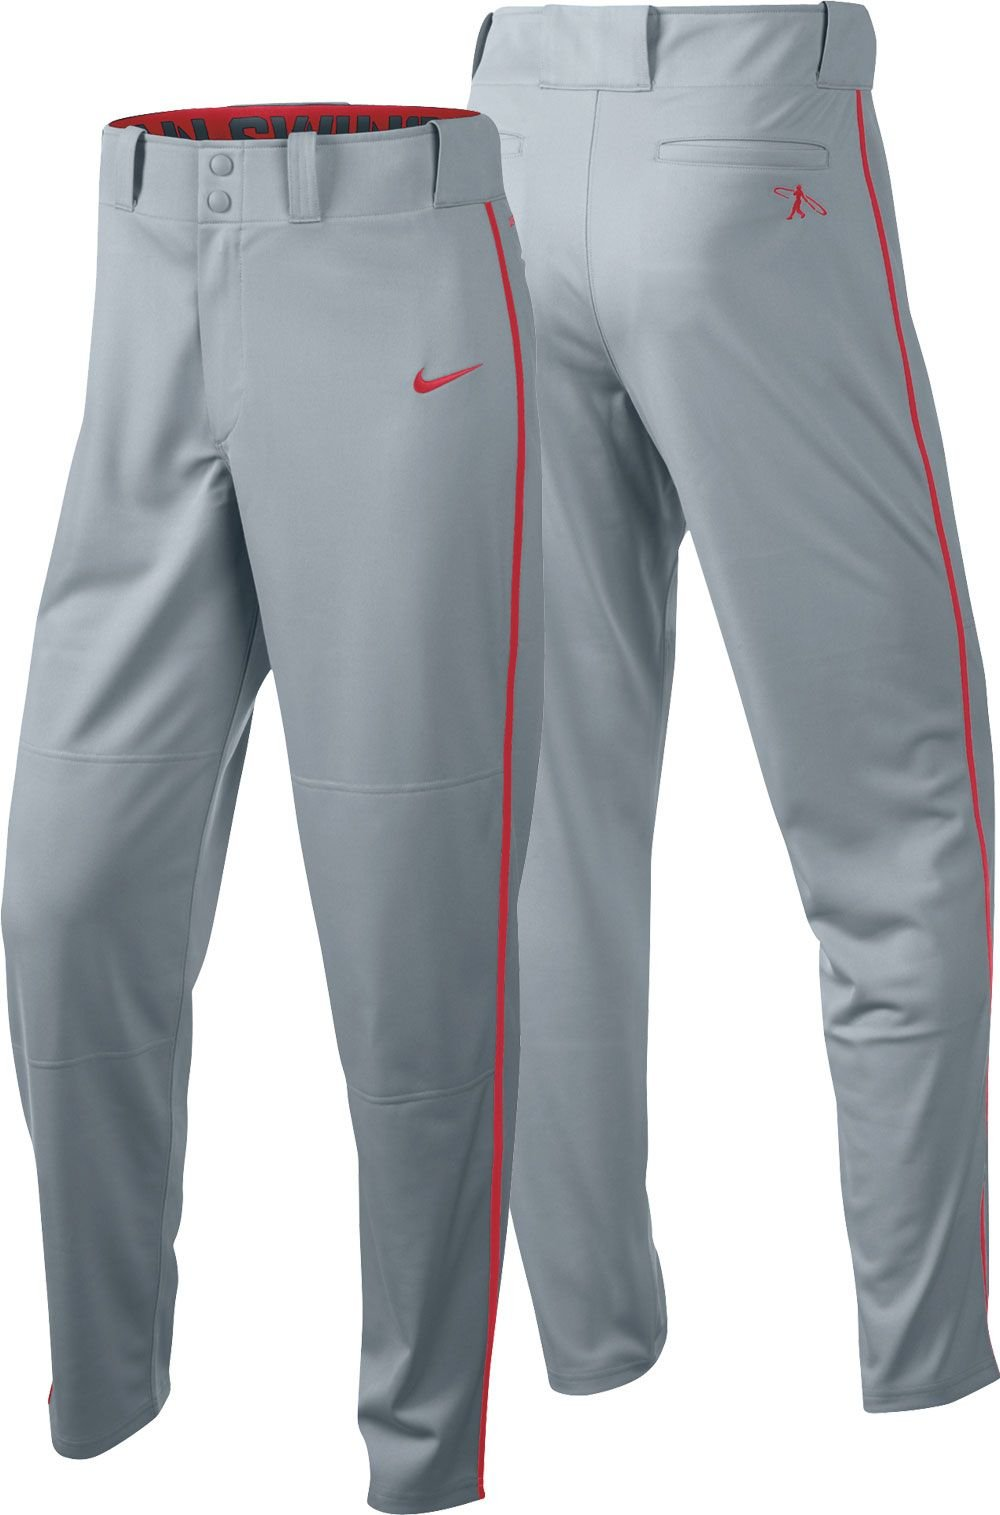 Nike Boys Swingman Dri-FIT Piped Baseball Pants (Grey/Red, Large) by Nike (Image #1)